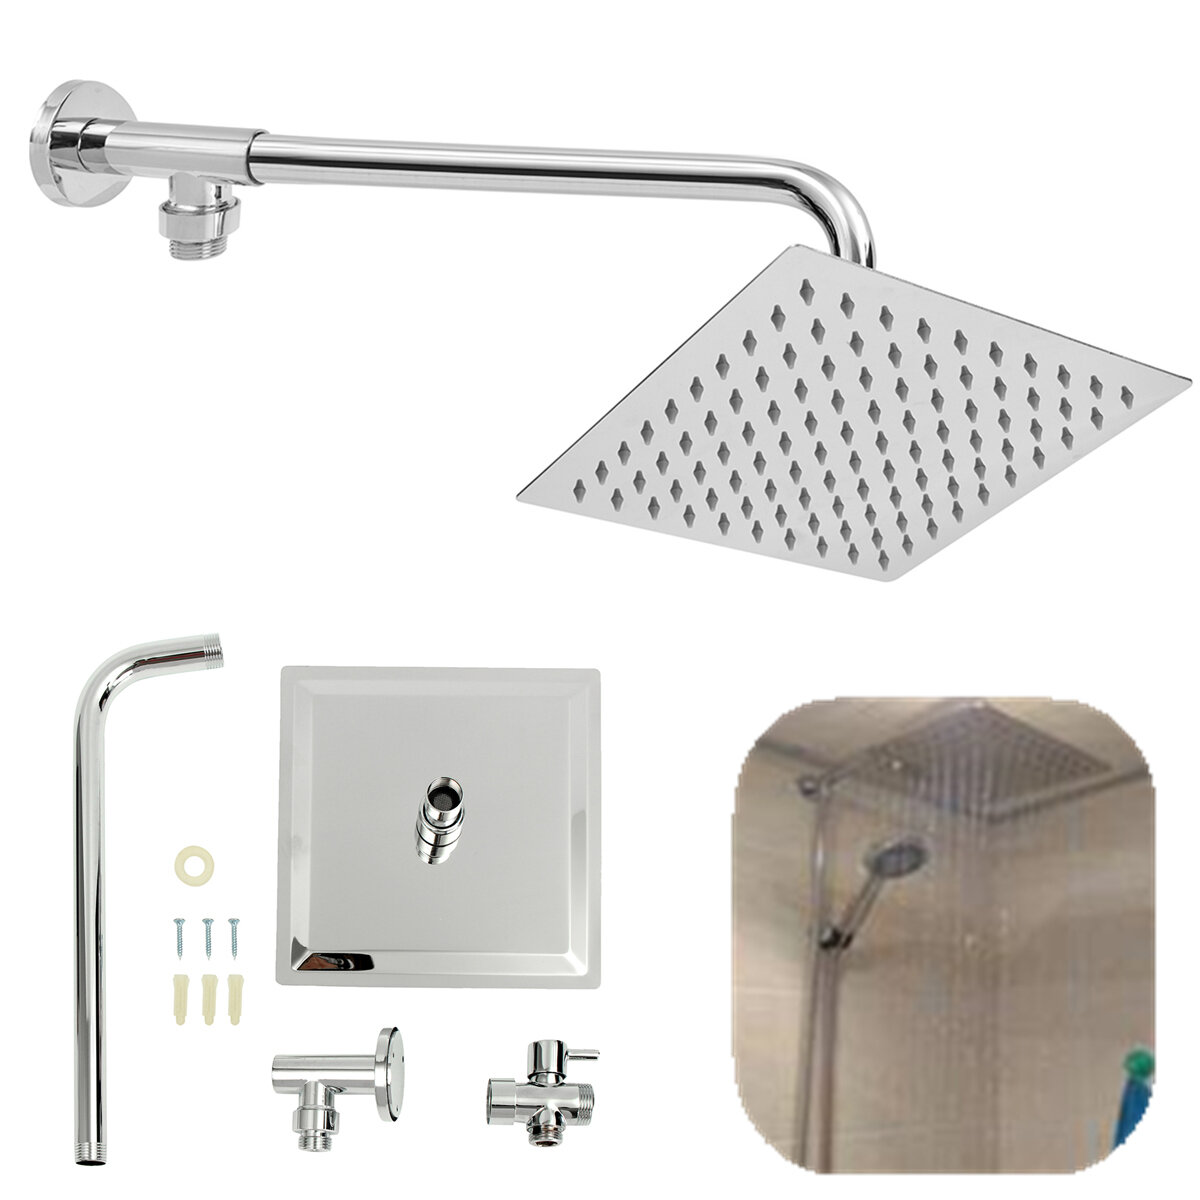 Shower Head Diverter Valve.8inch 304 Stainless Steel Square Shower Head Extension Arm Bottom Entry Shower Diverter Valve Set